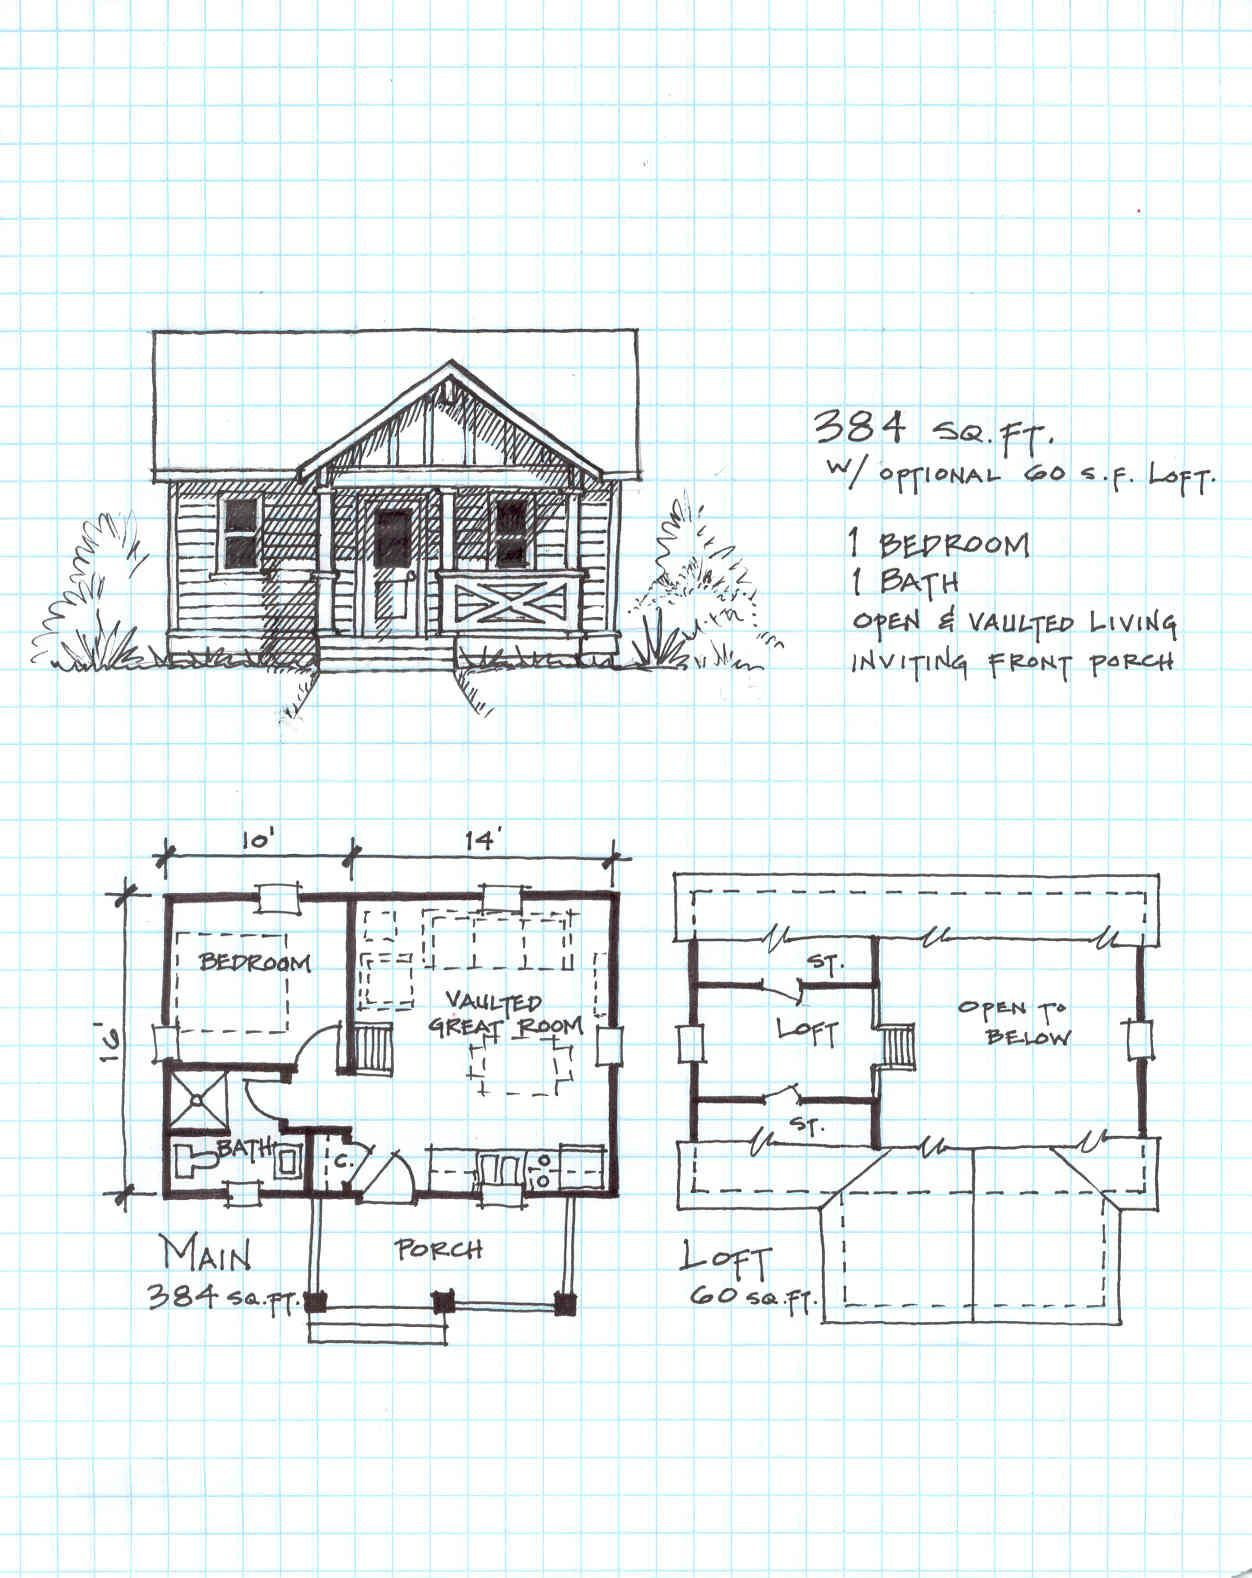 Pin By Abby S On Cabin In 2020 Small Cabin Plans Cabin House Plans Cabin Plans With Loft